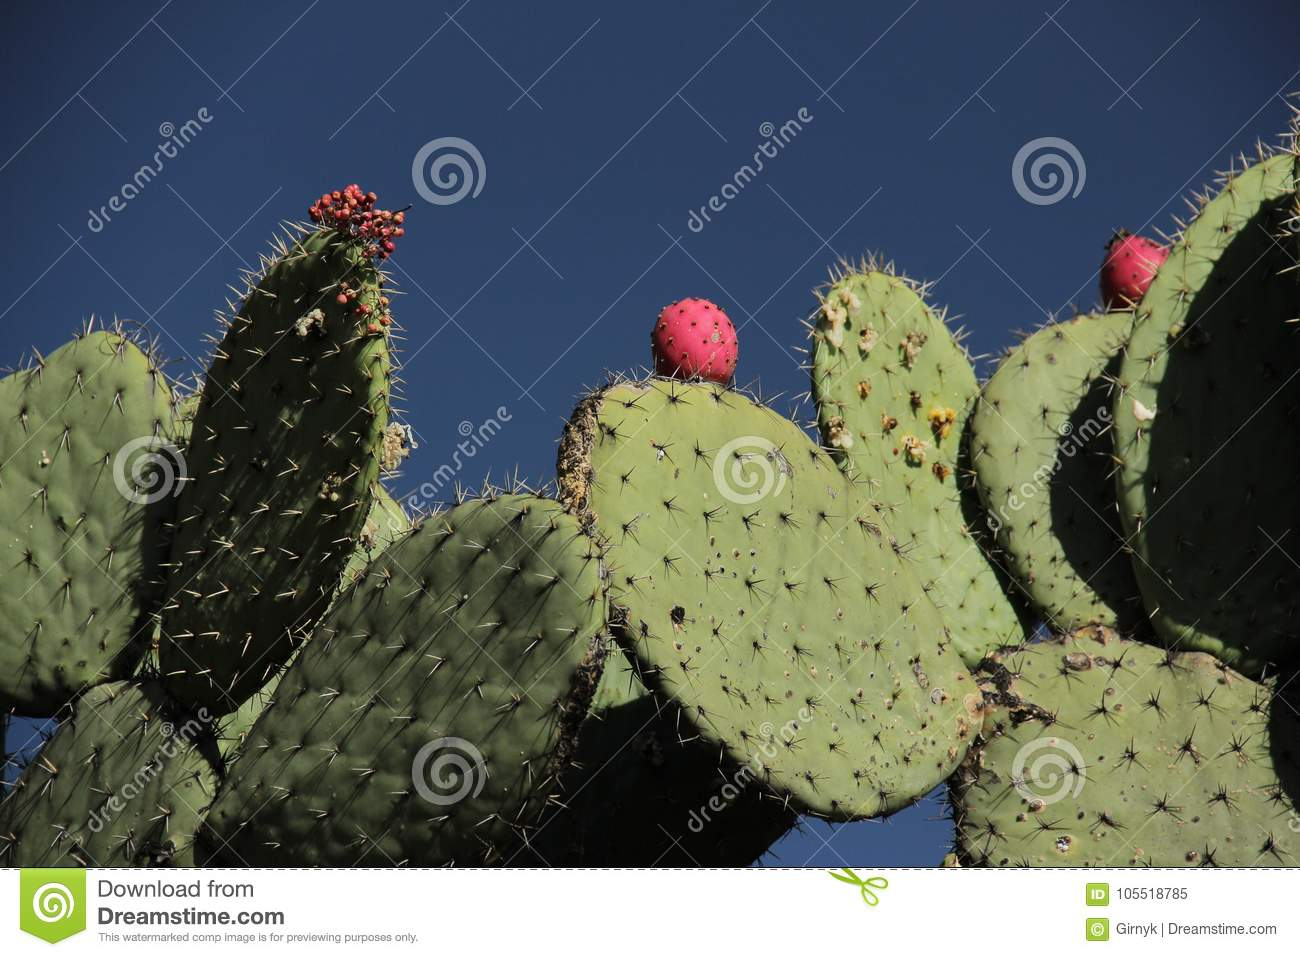 Cactus Nopal And Tuna In Mexico  Stock Image - Image of cactaceae